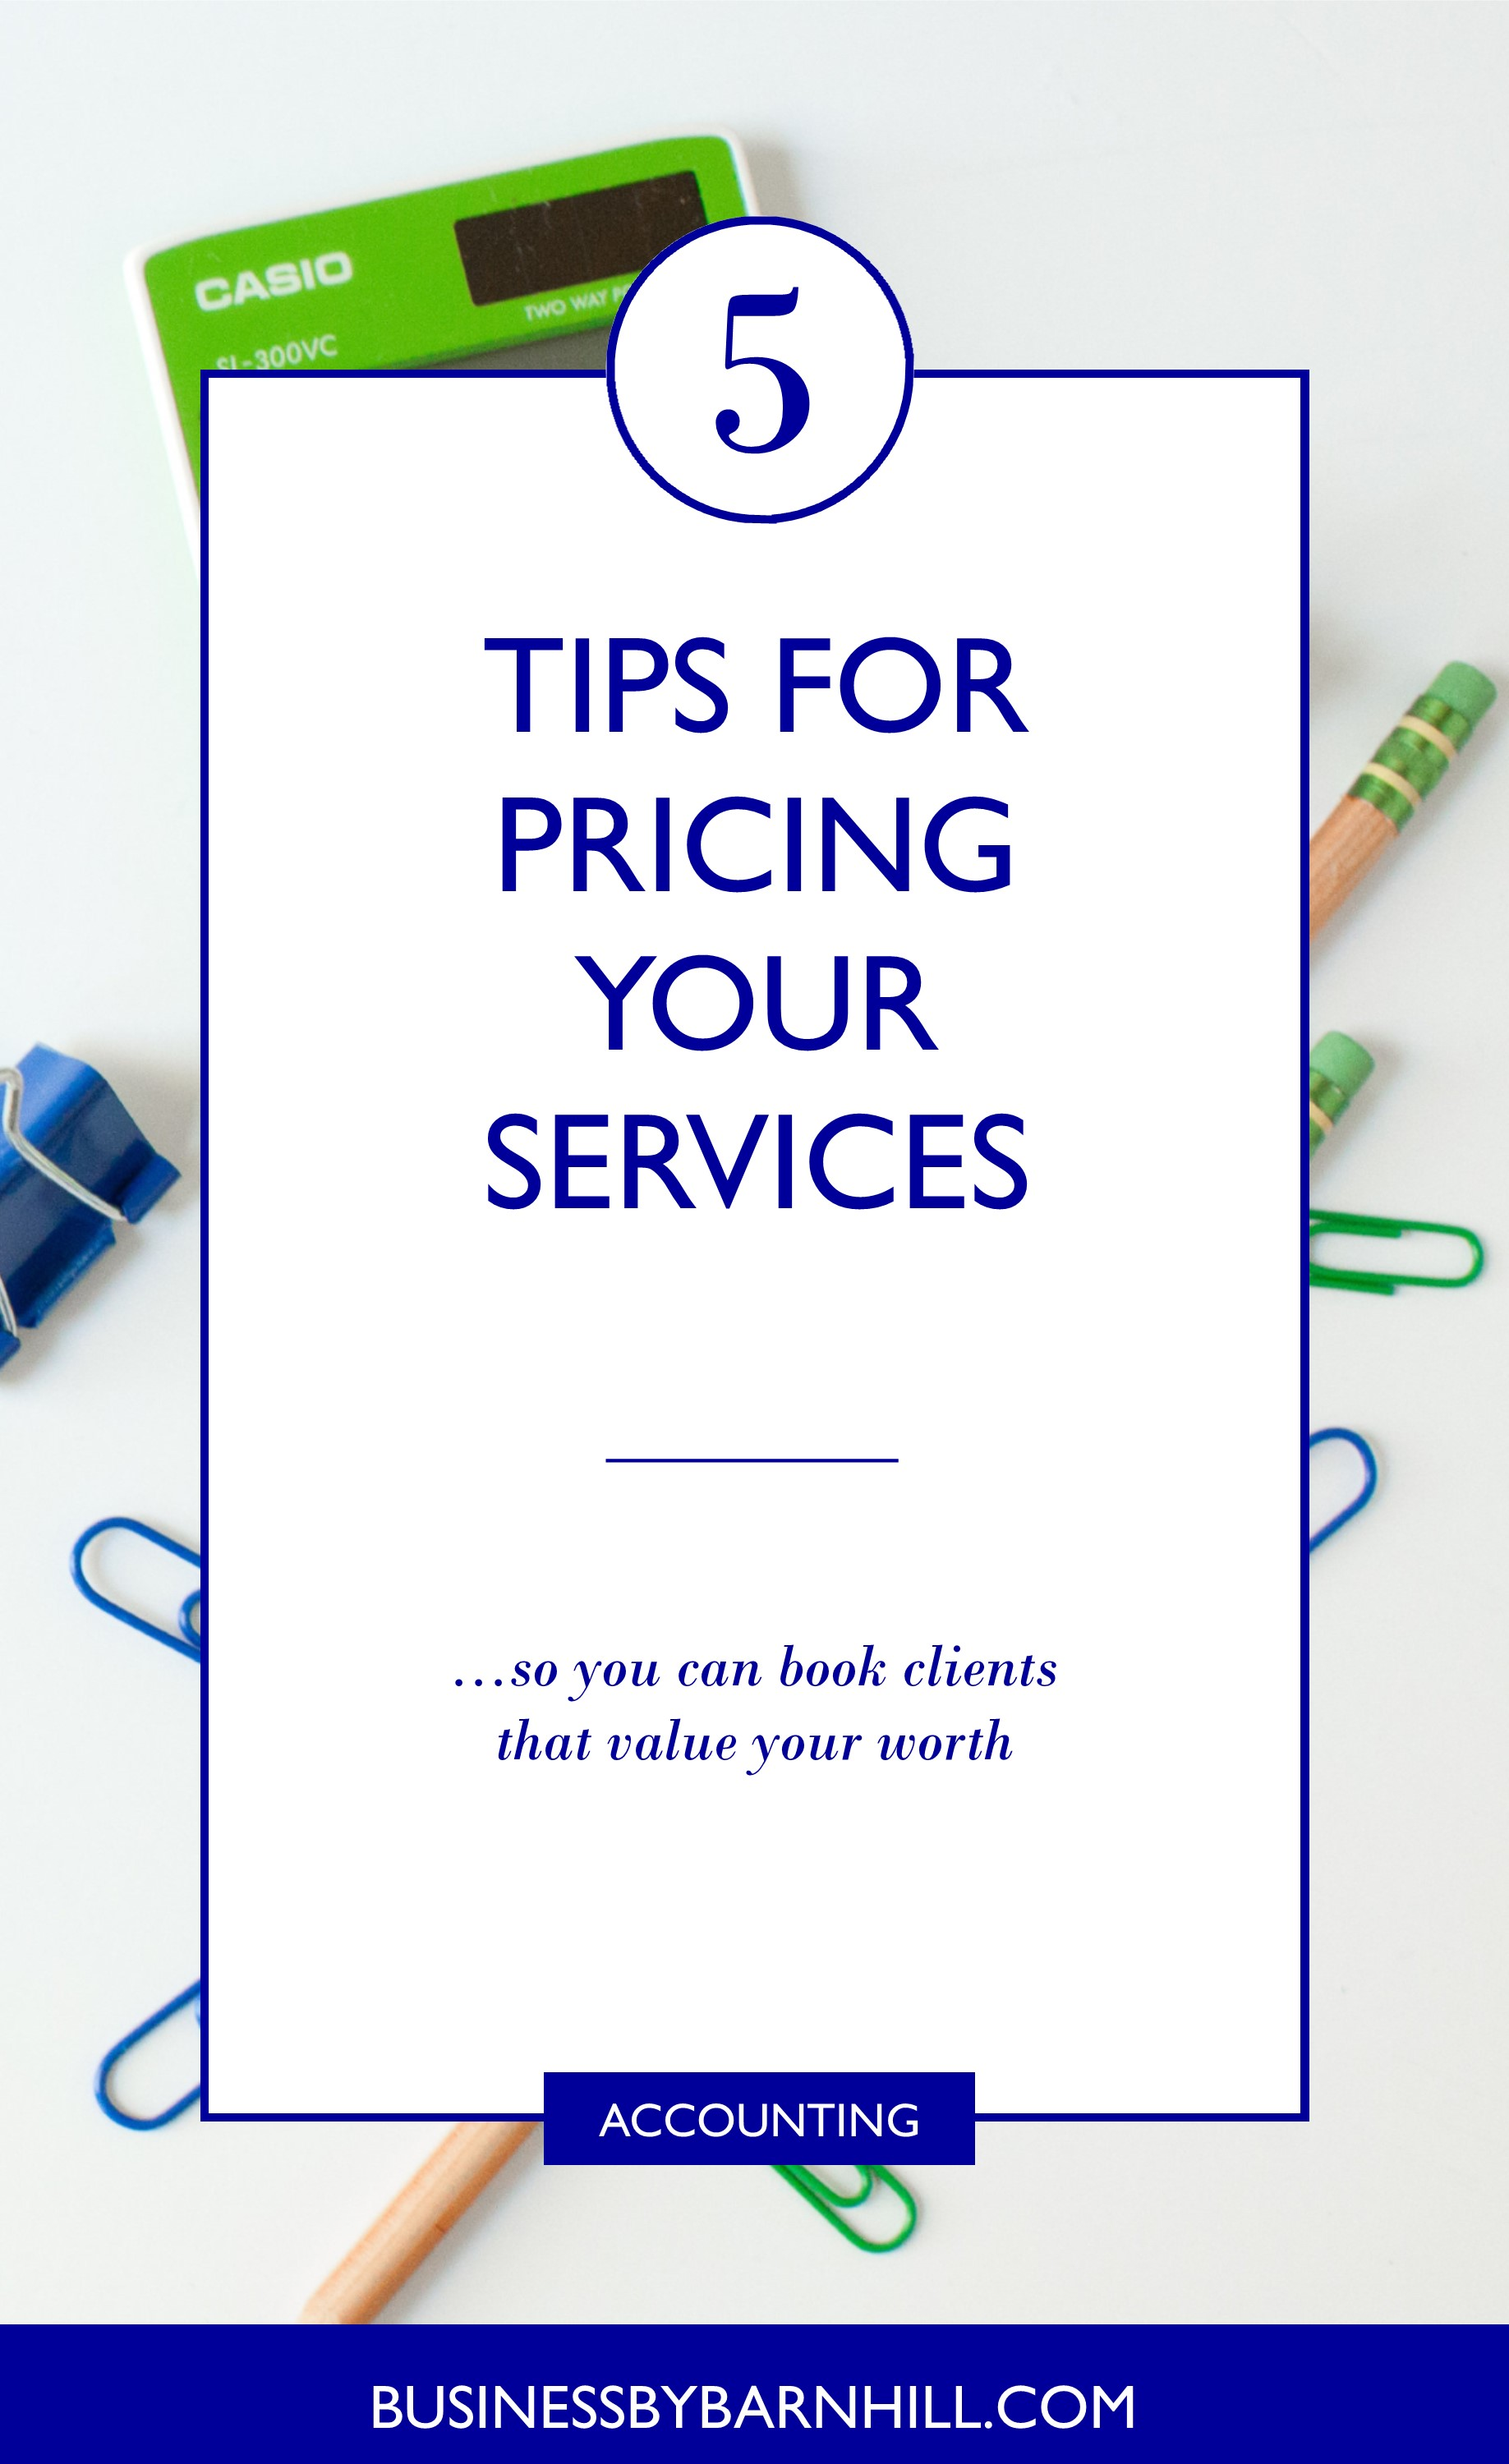 business by barnhill pinterest 5 tips for pricing your services.jpg